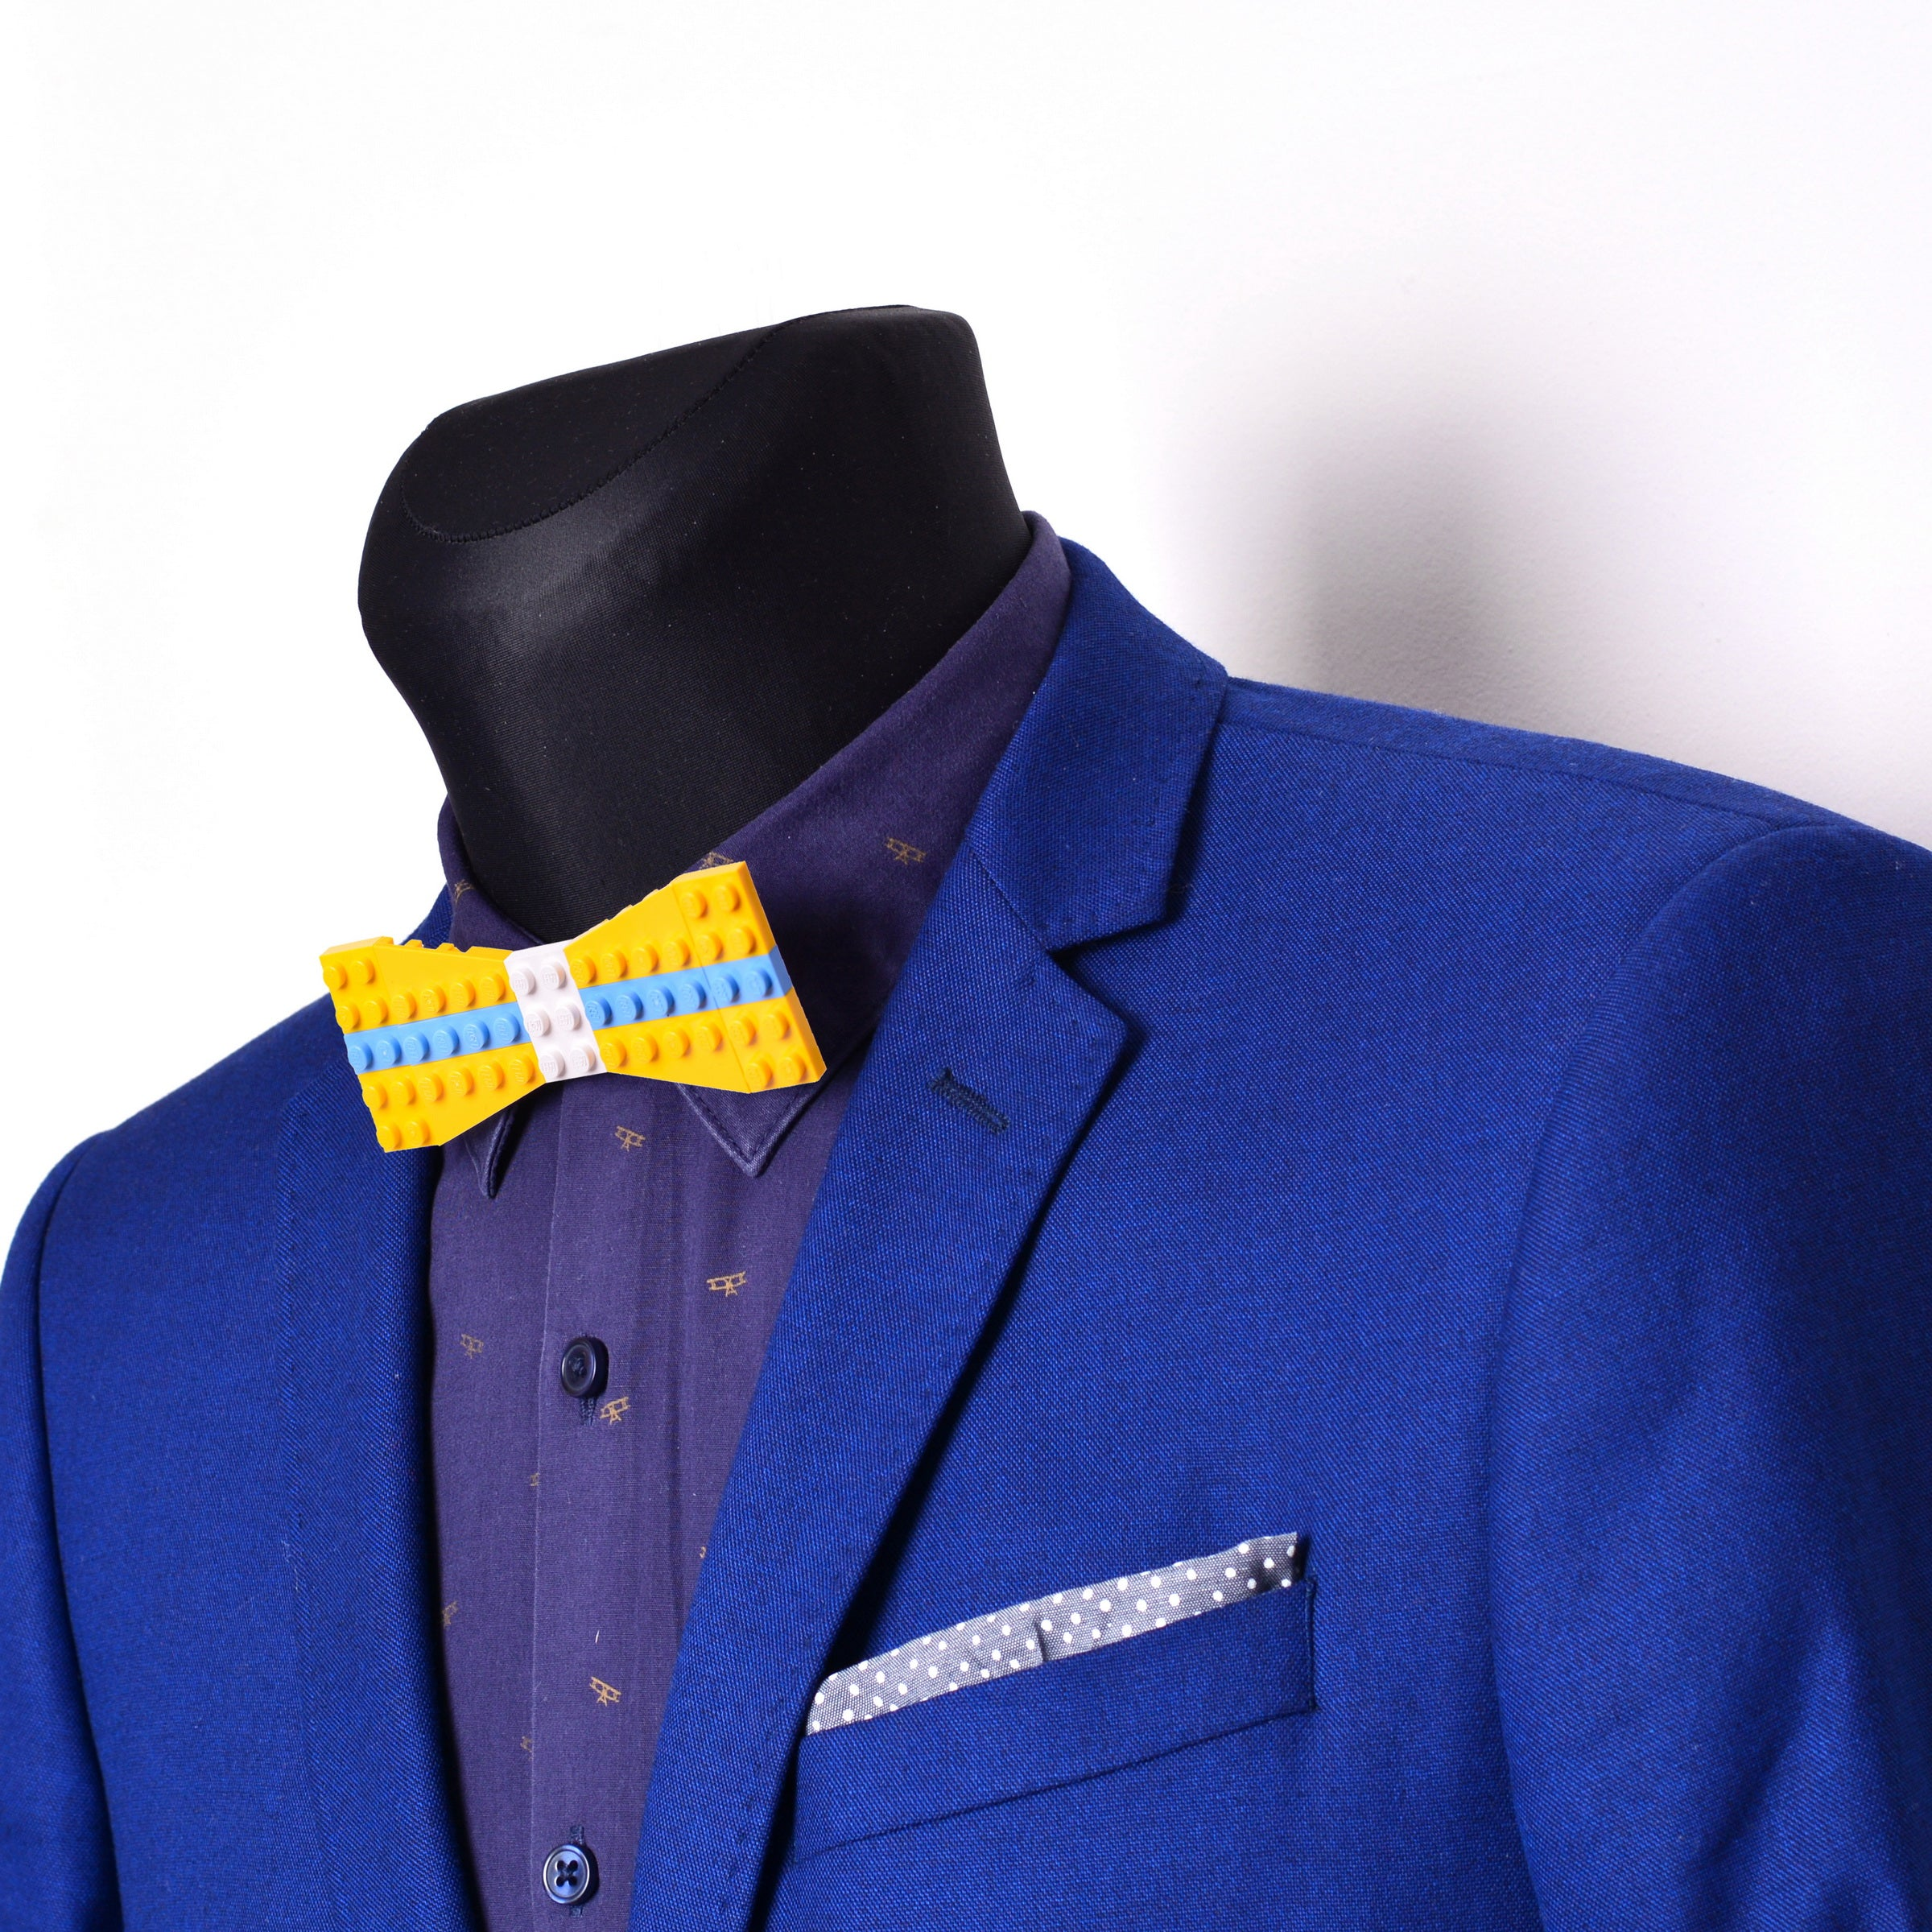 Yellow with white center and light blue stripes